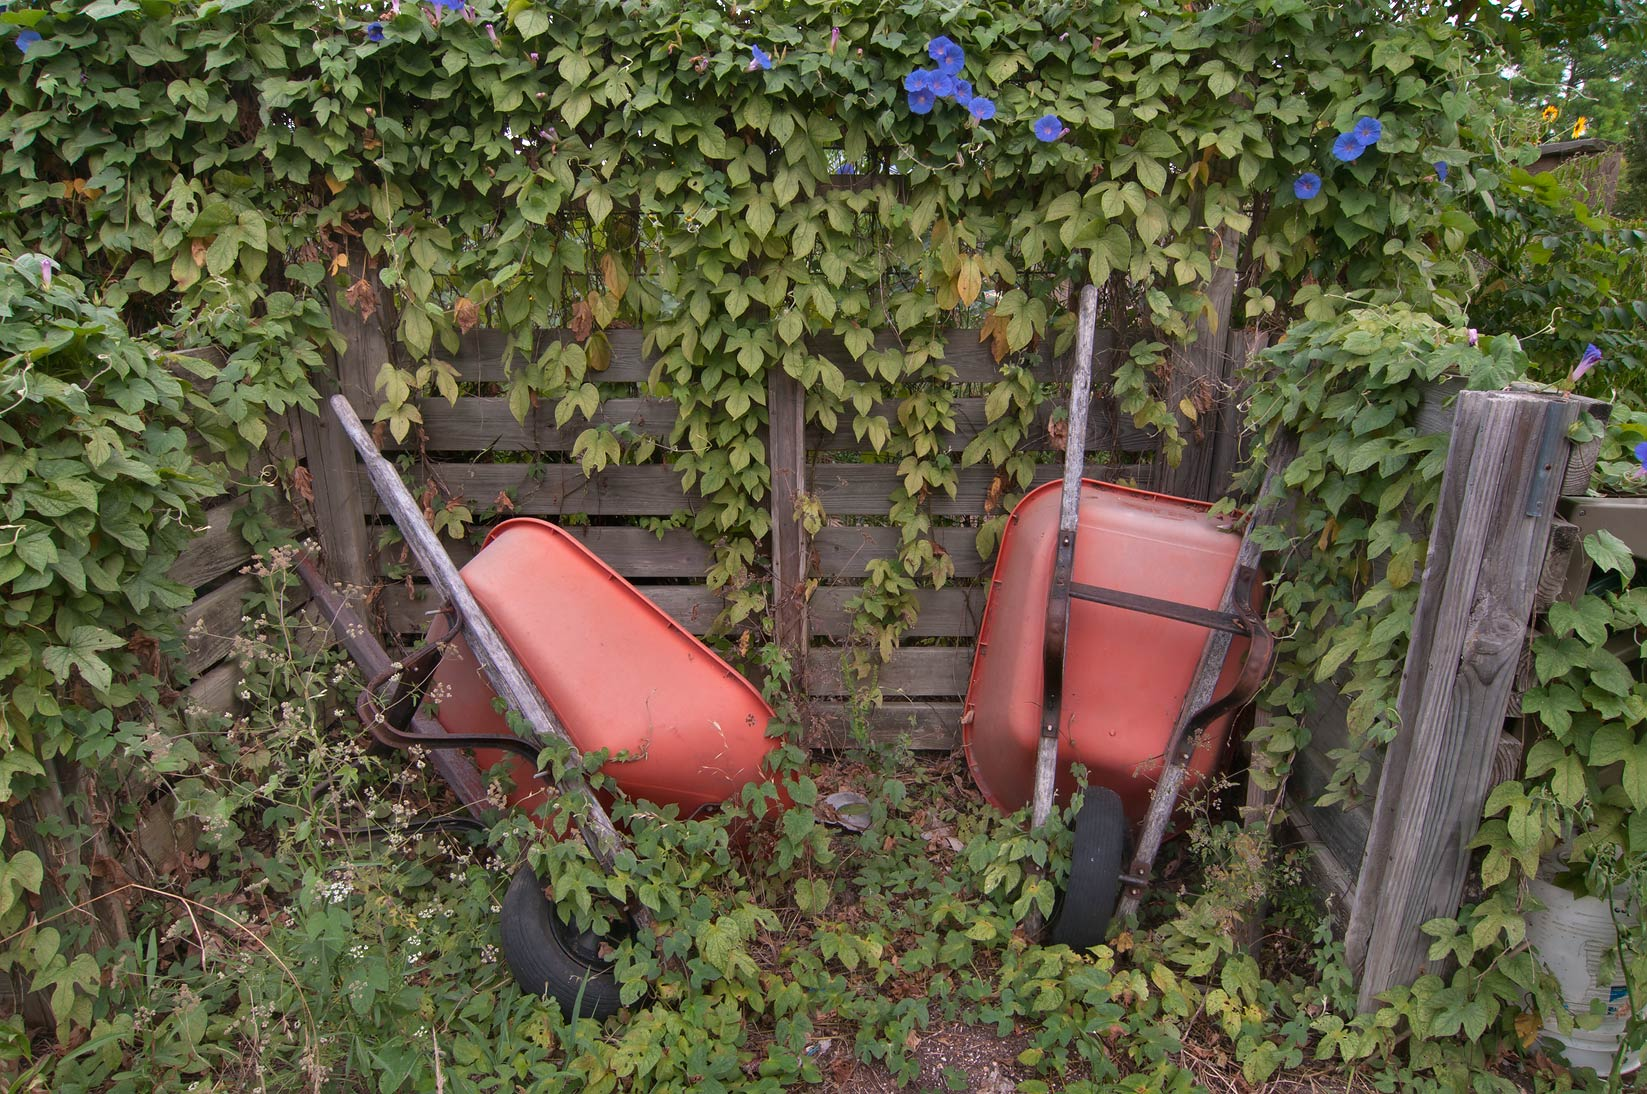 Abandoned wheelbarrows in TAMU Holistic Garden in...M University. College Station, Texas